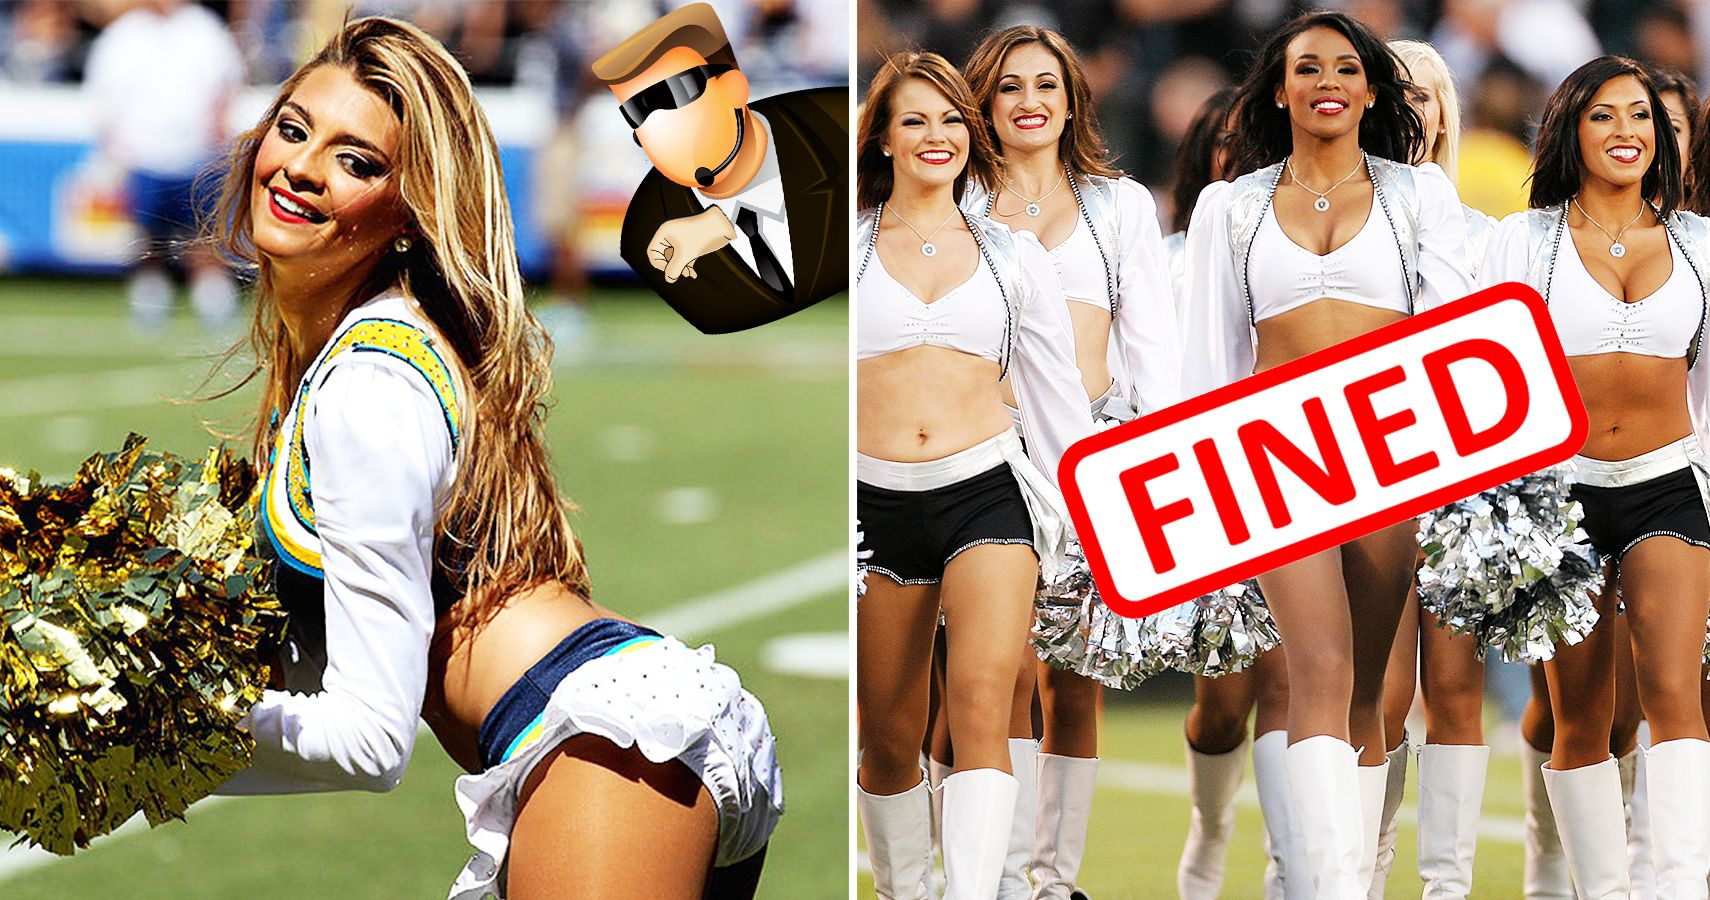 nfl cheerleaders dating